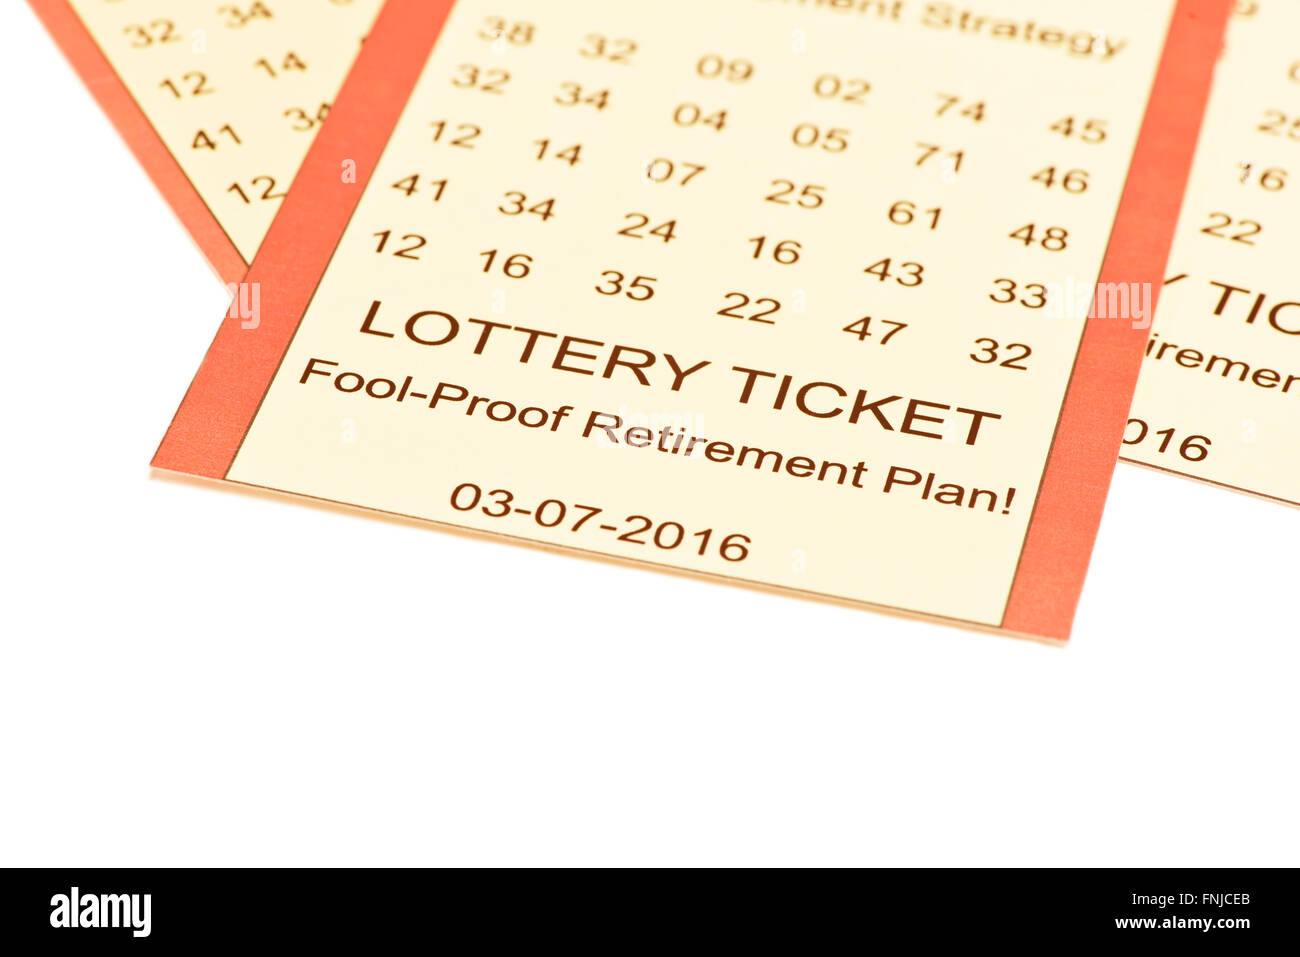 Lottery ticket retirement plan on white background. - Stock Image